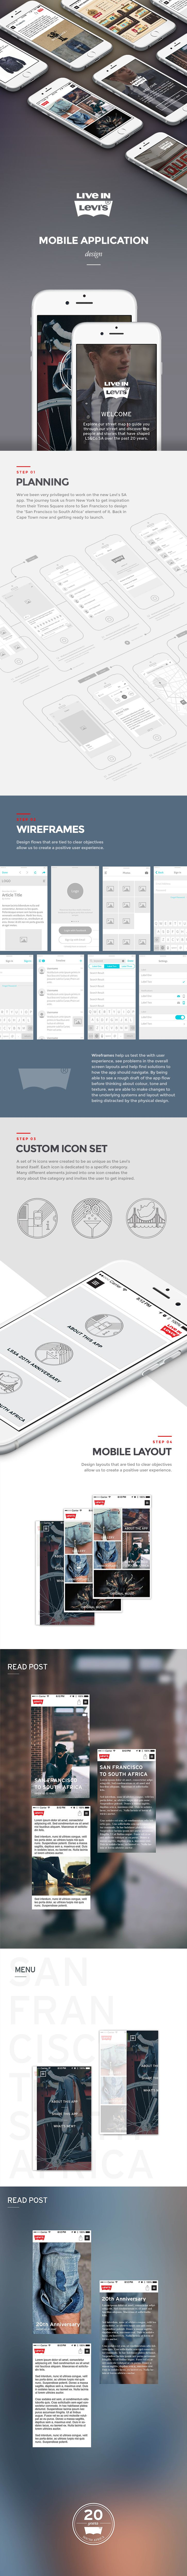 Levi's South Africa Mobile Application Design